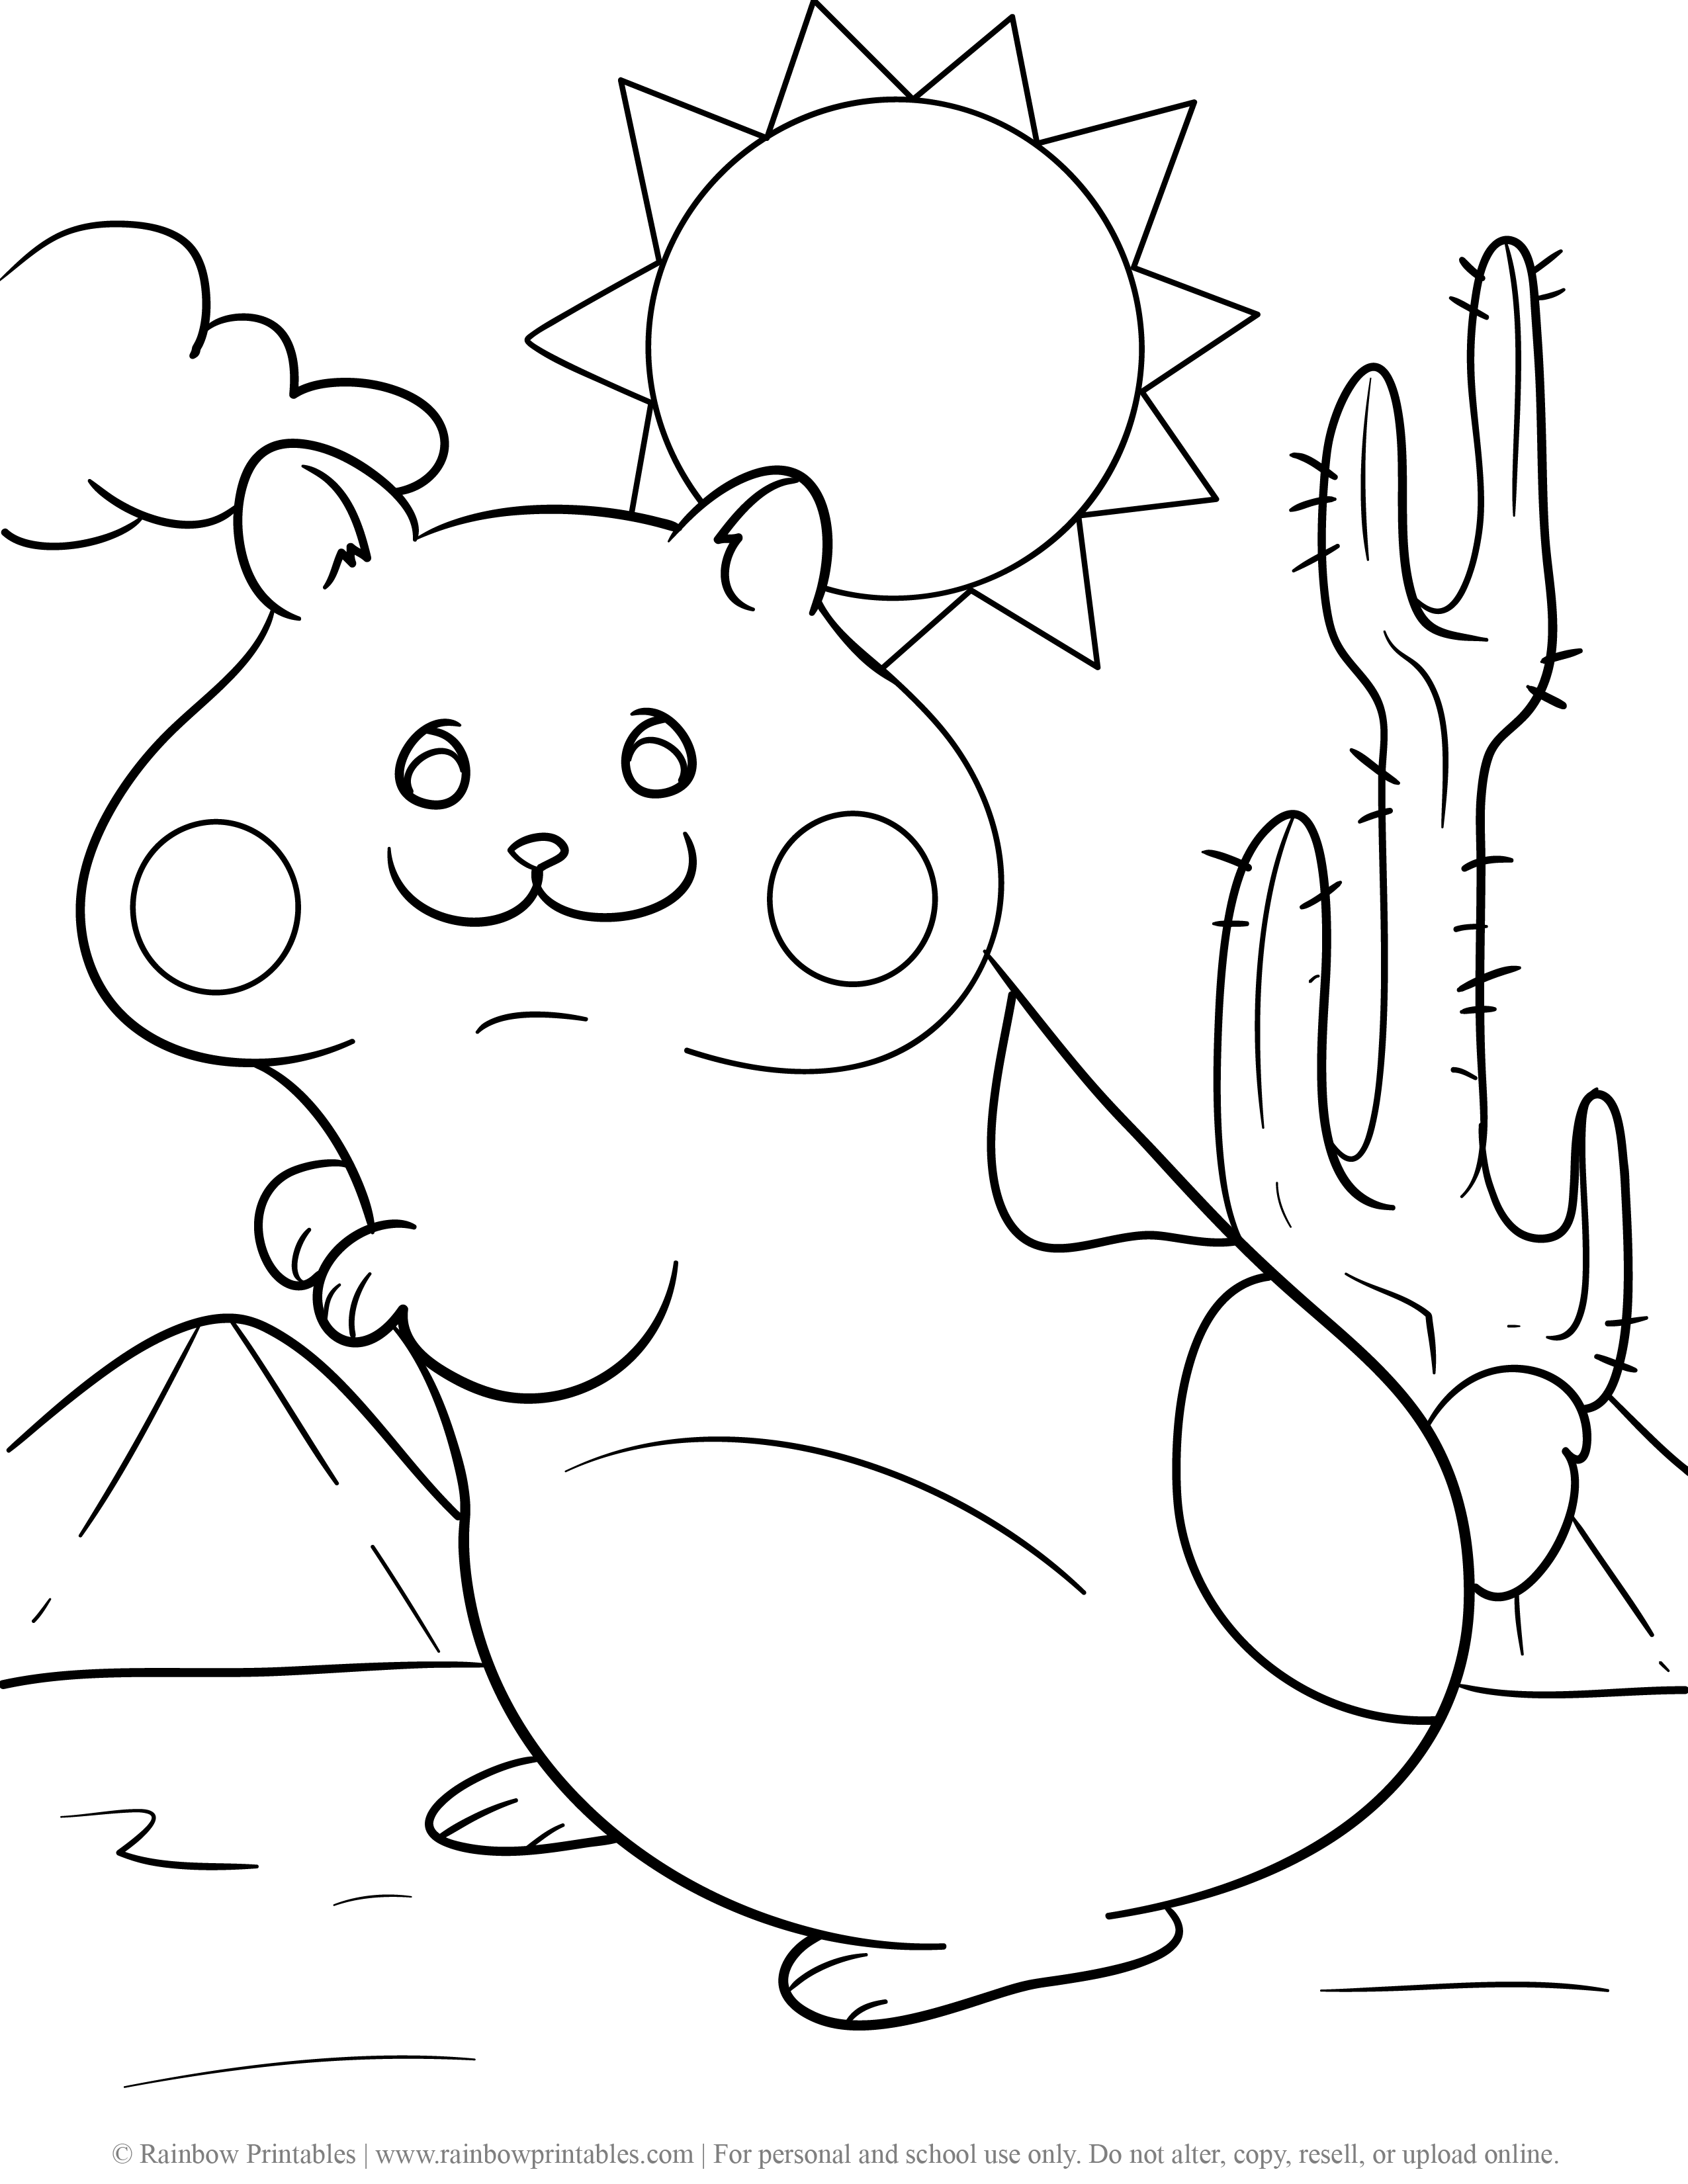 HAPPY Hamster Rodent Guinea Pig Sunny Desert Cactus Arizona Coloring Page for Kids